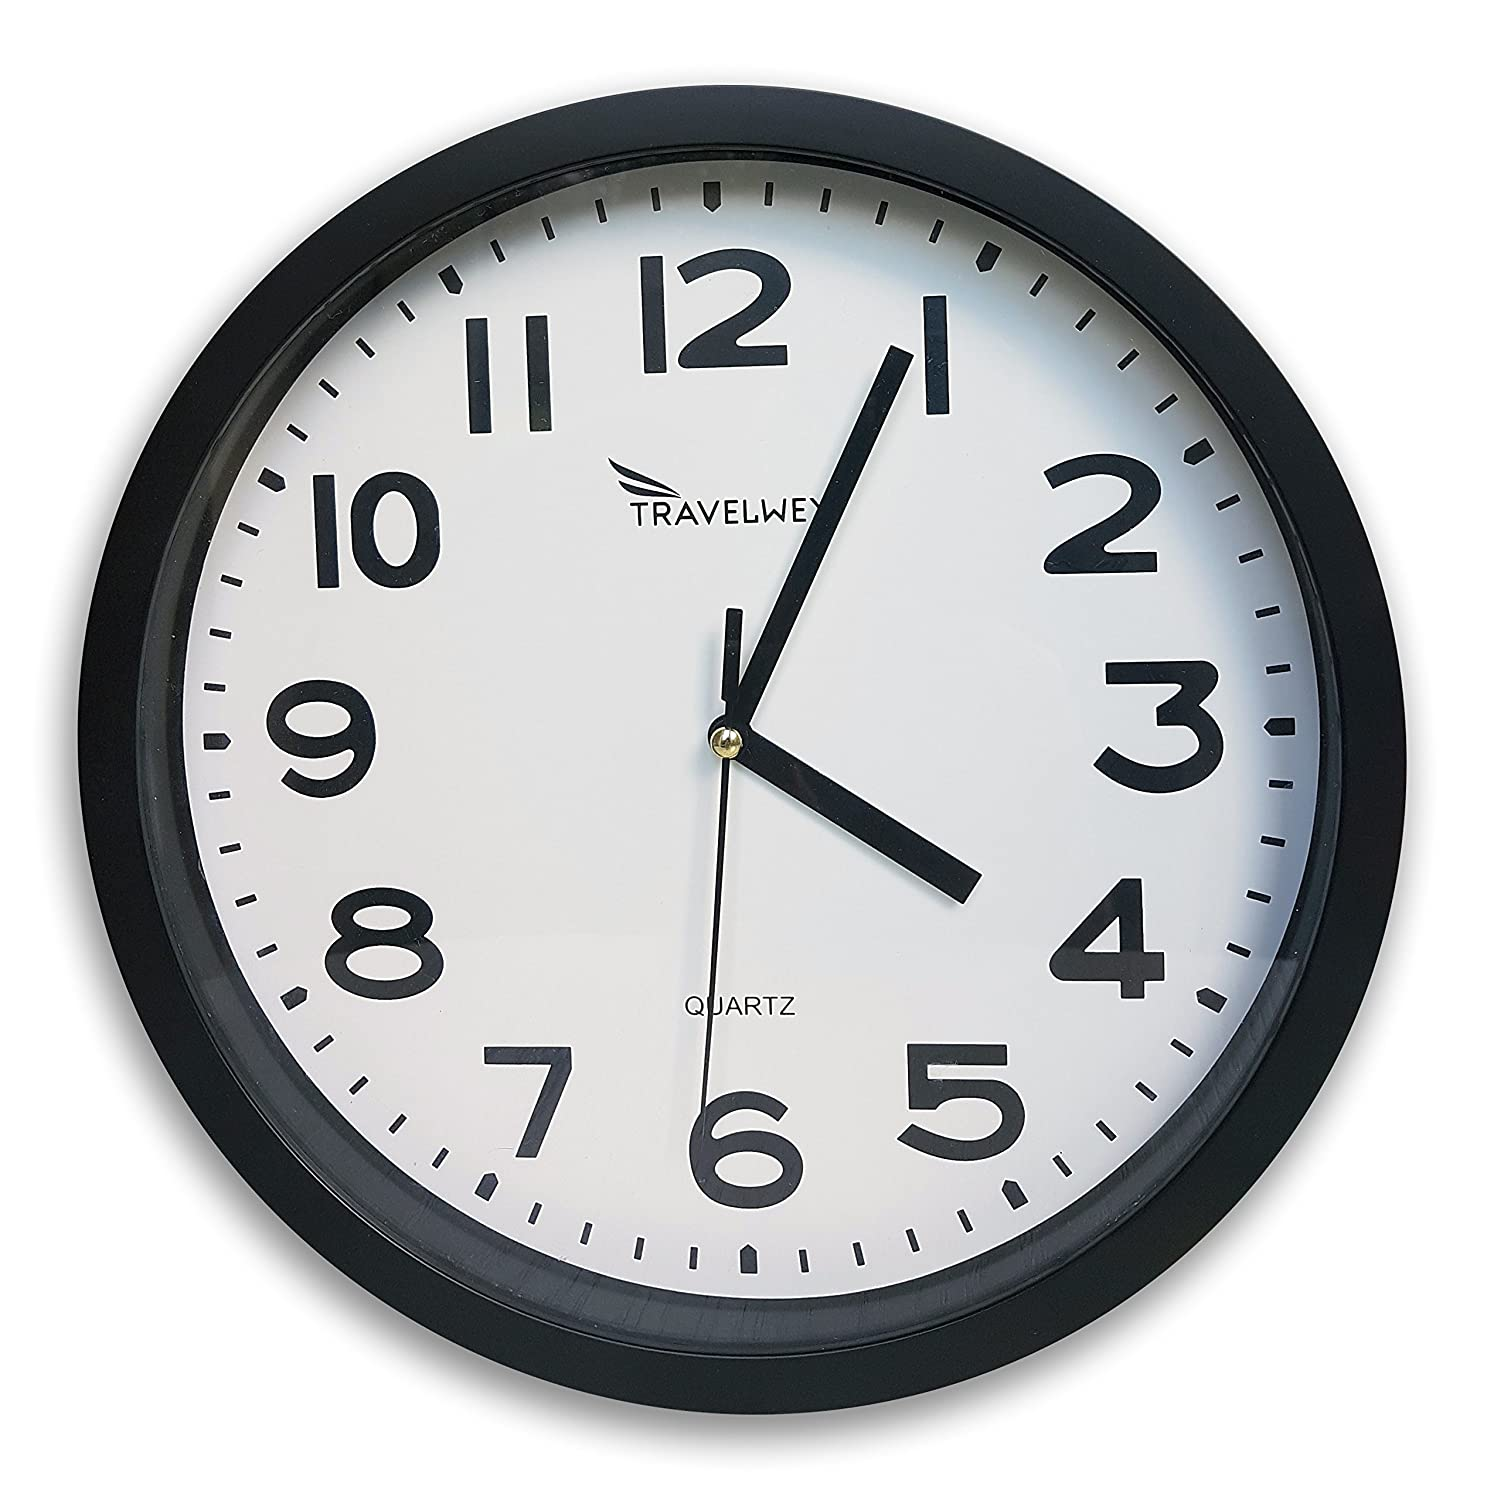 Travelwey Home Wall Clock - No Bells, No Whistles, Simply Hang and Go, Non Ticking, Big Bold Digits, Analog, Battery Operated, Black